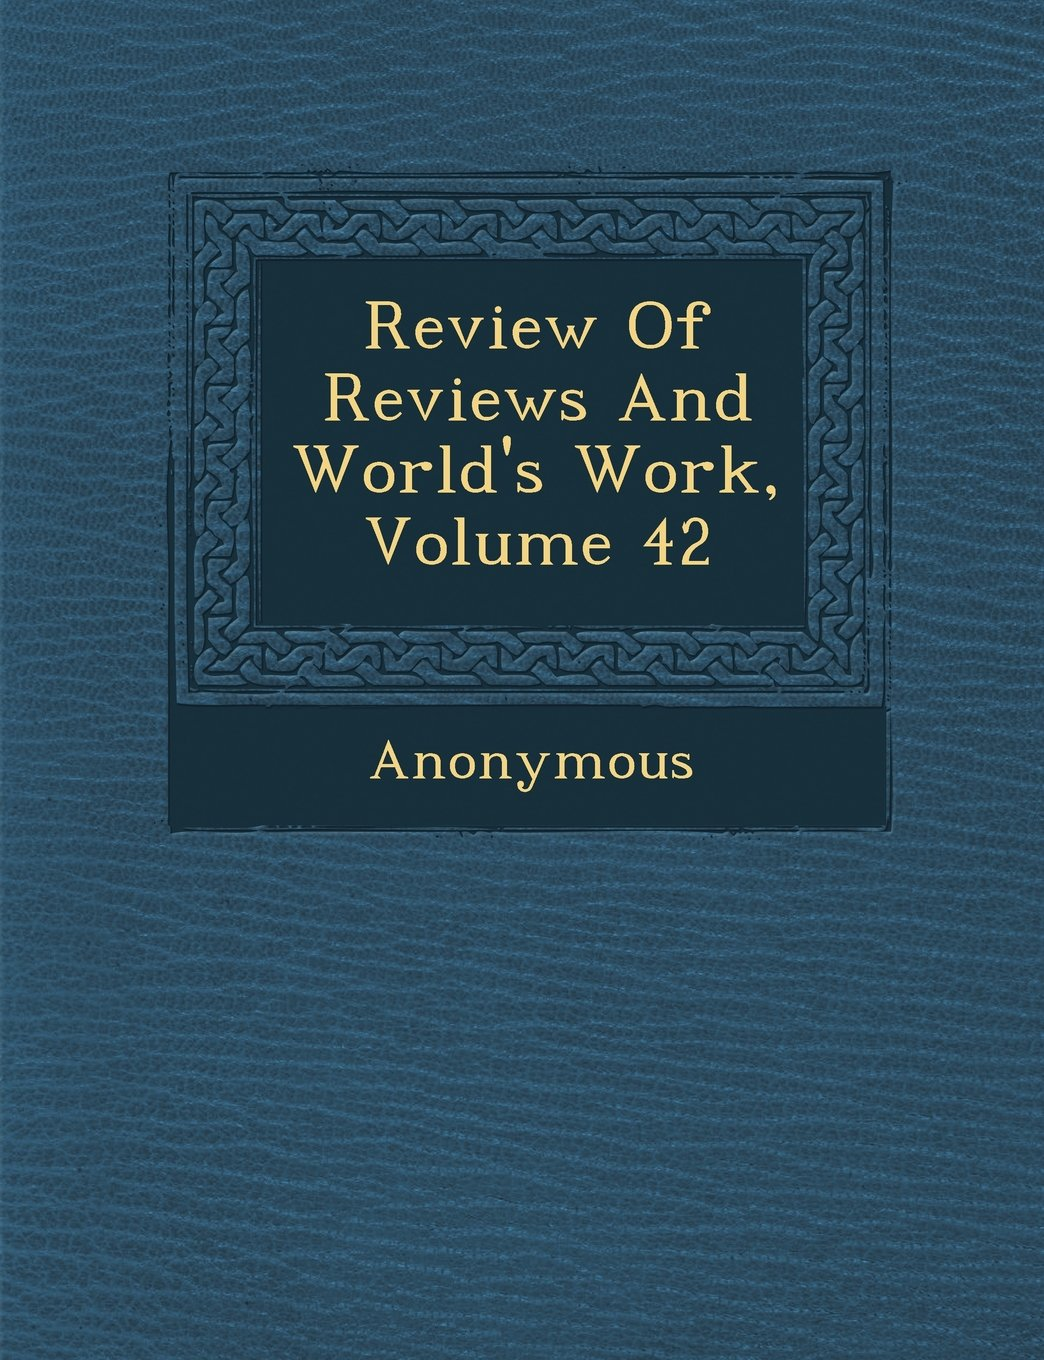 Review of Reviews and World's Work, Volume 42 ebook